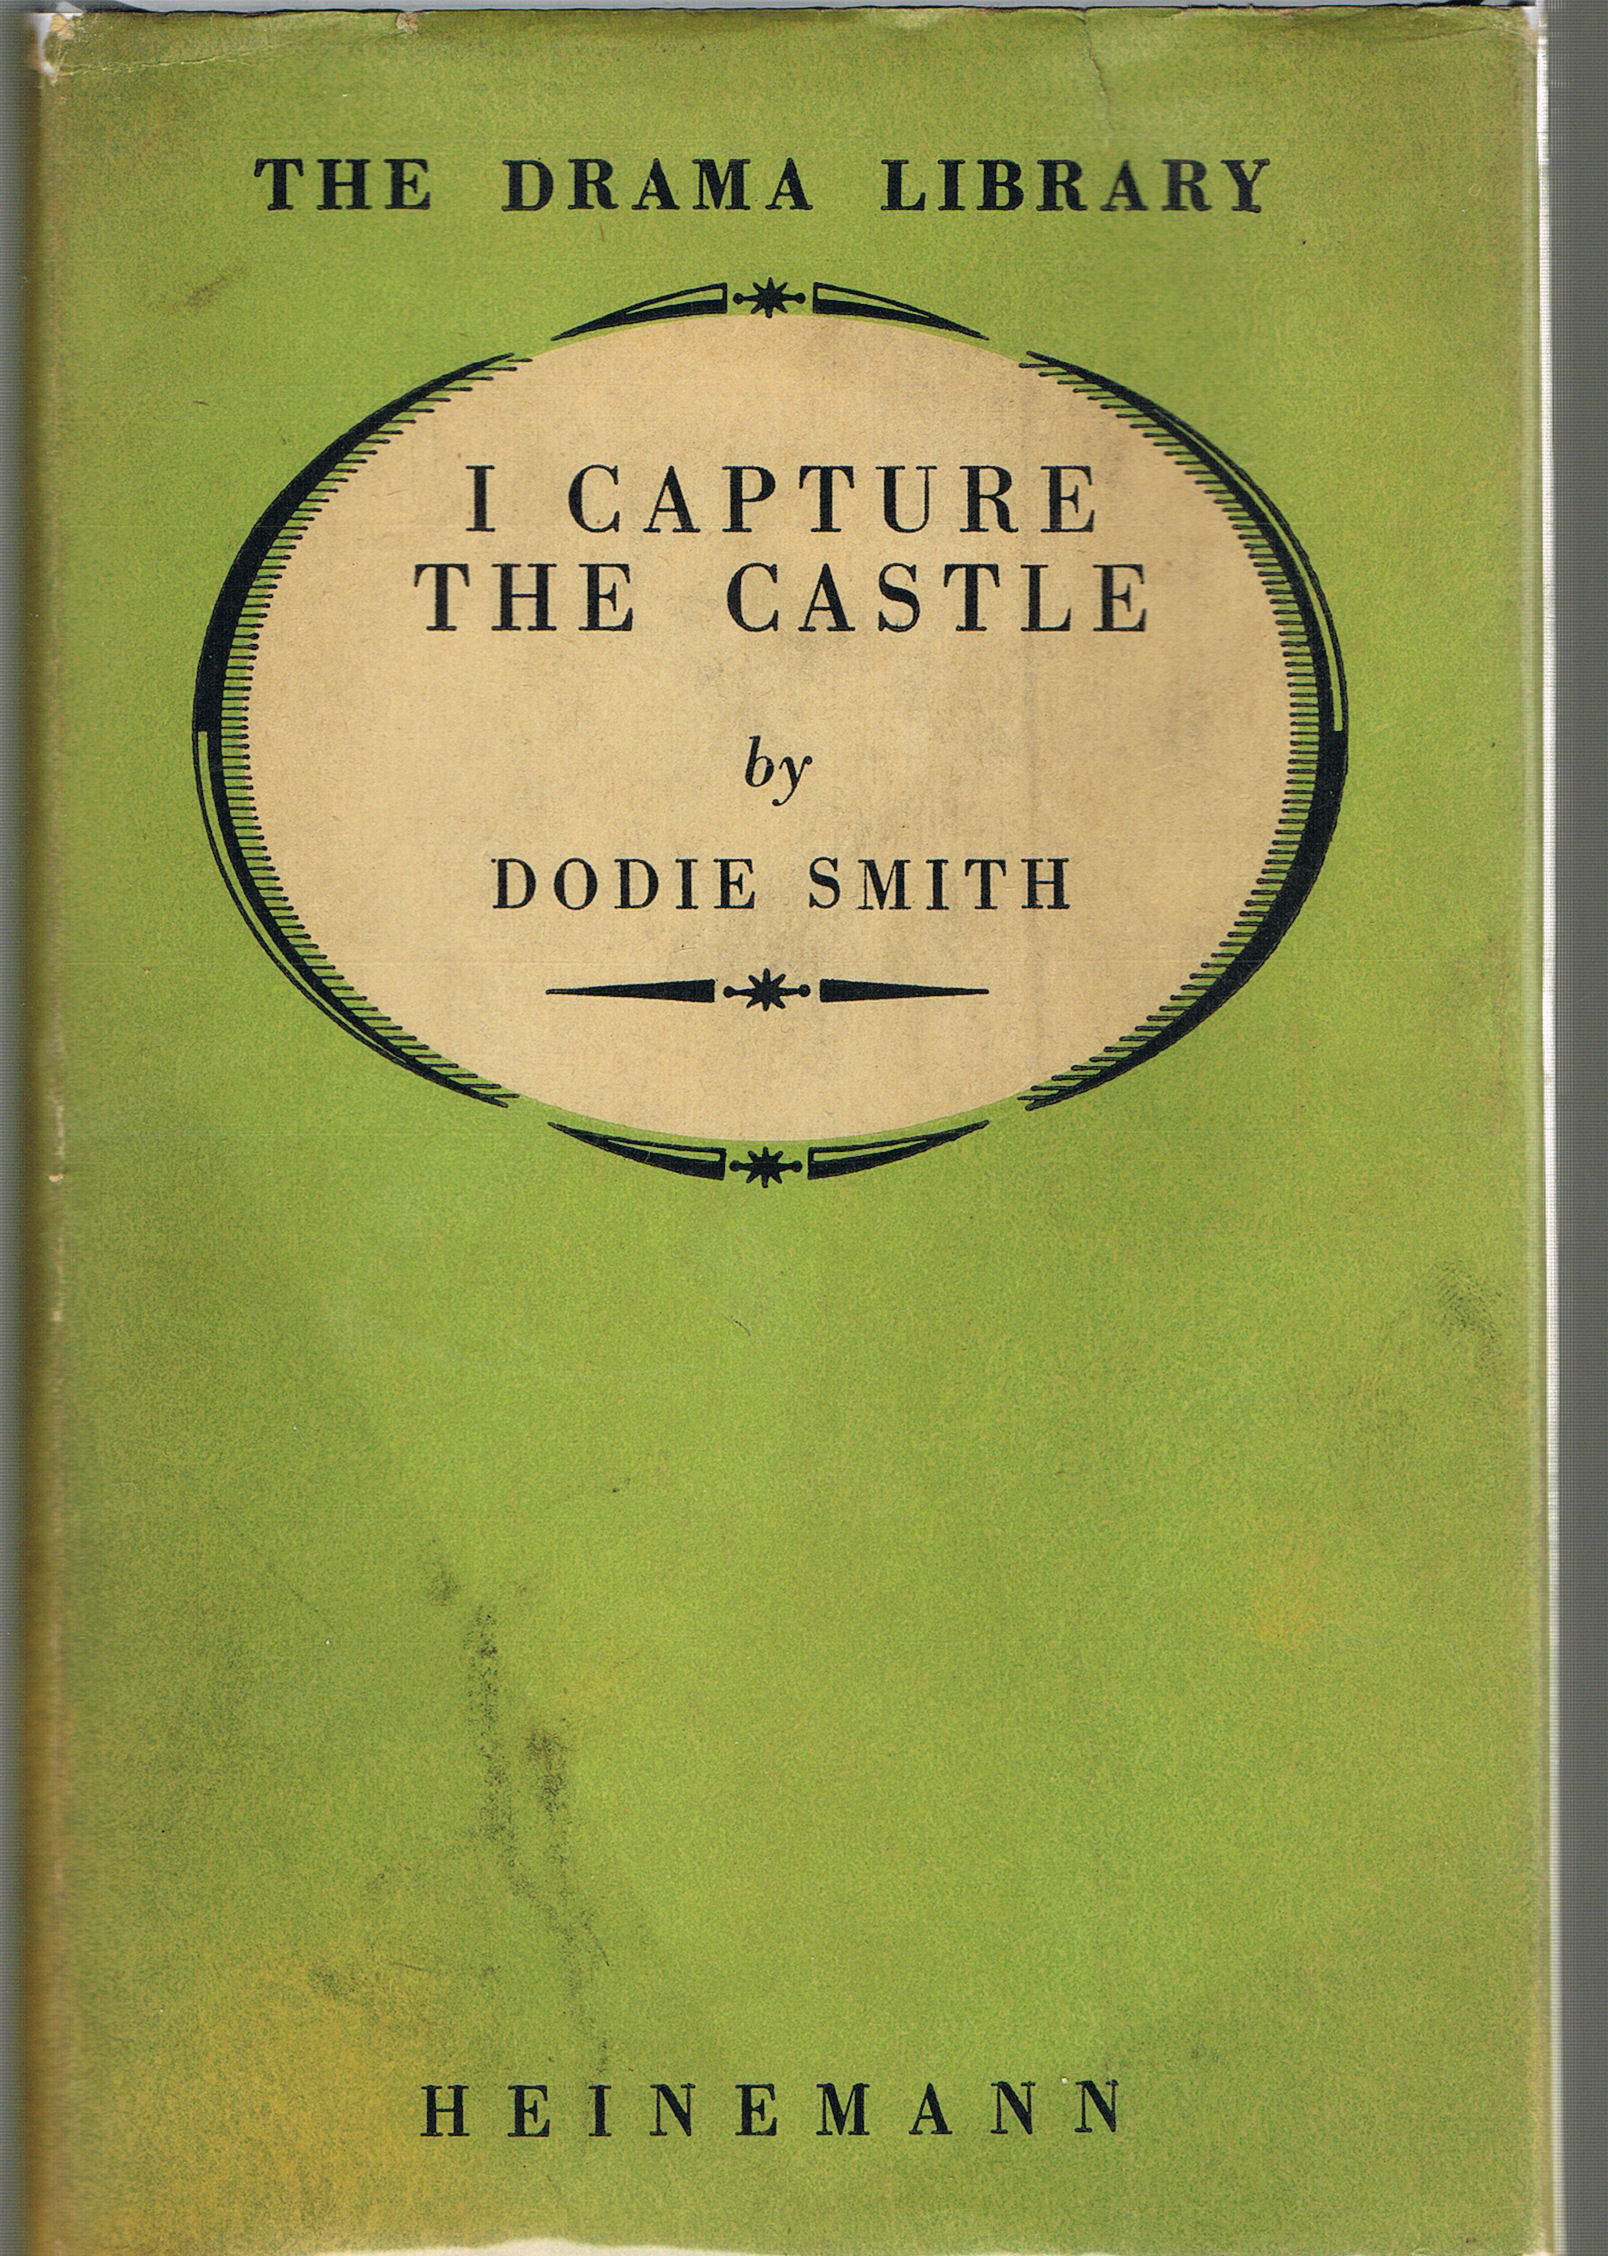 Image for I Capture the Castle: A Romantic Comedy (Drama Library)